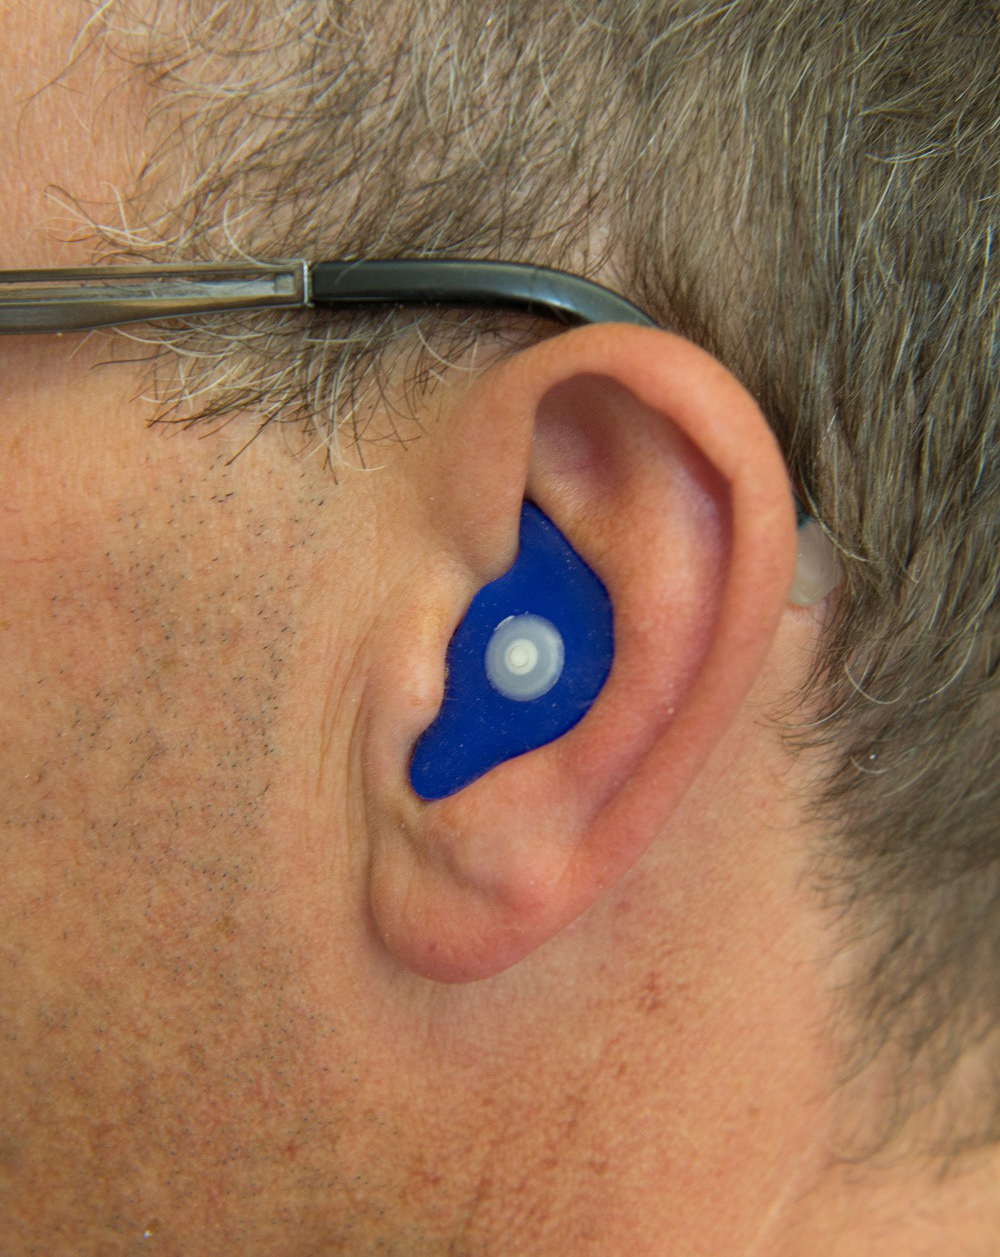 Specially adapted Noisebreakers overcome the classic uncomfortable mp3 earpiece problem!